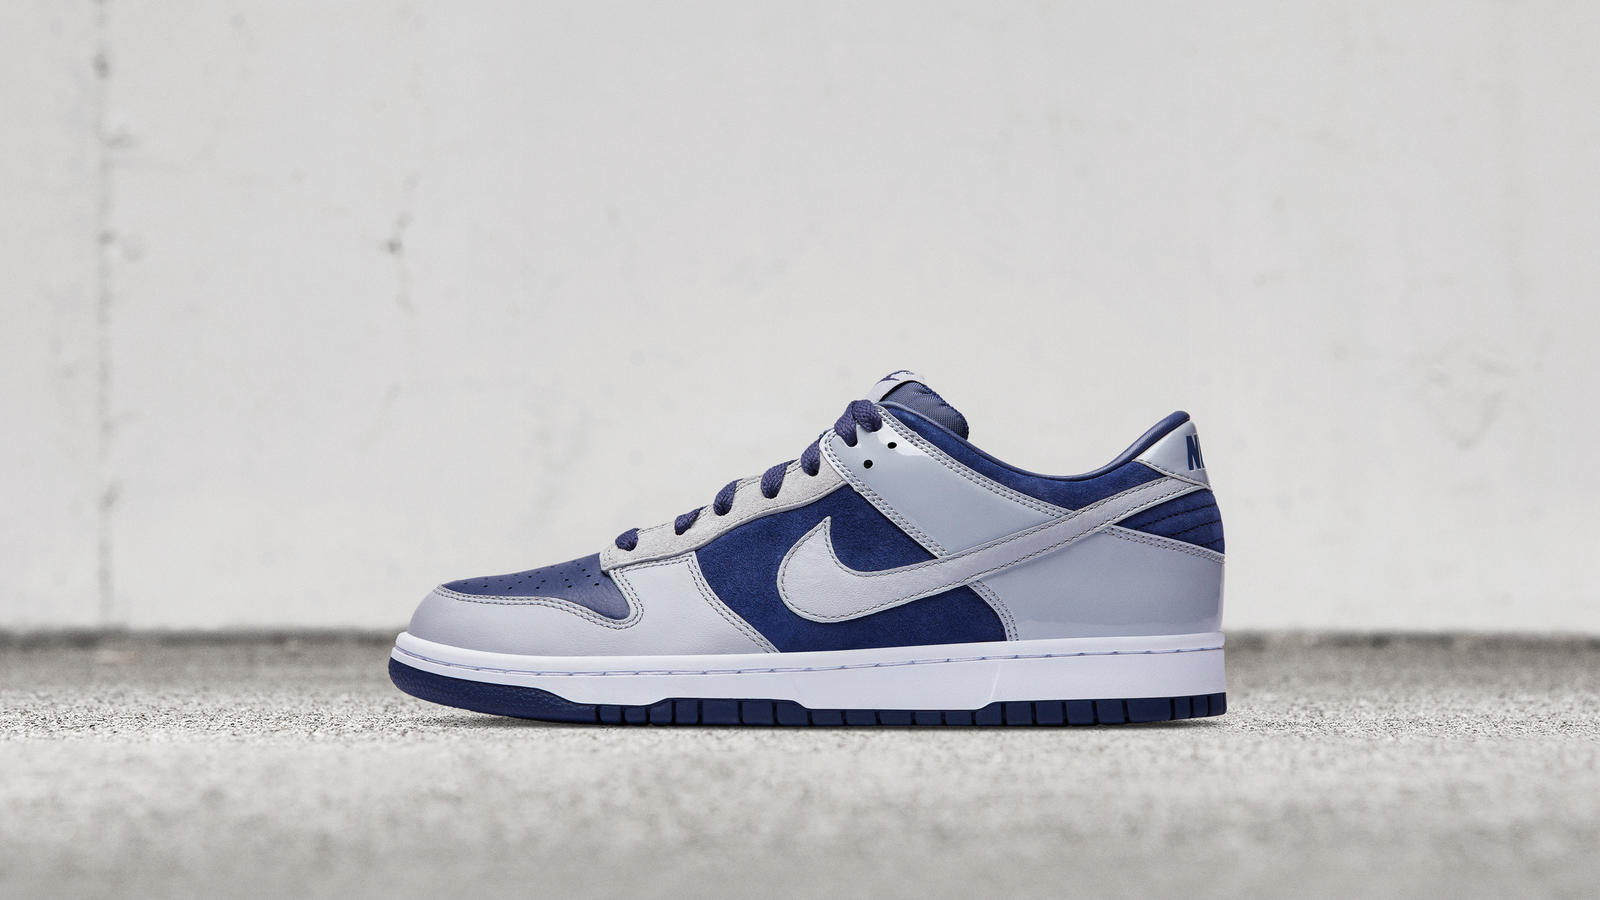 d92488d73fb coupon for nike sb dunk high pro 6990c c8125  where to buy atmos x nike  dunk low jp 1 4aacf 56b92